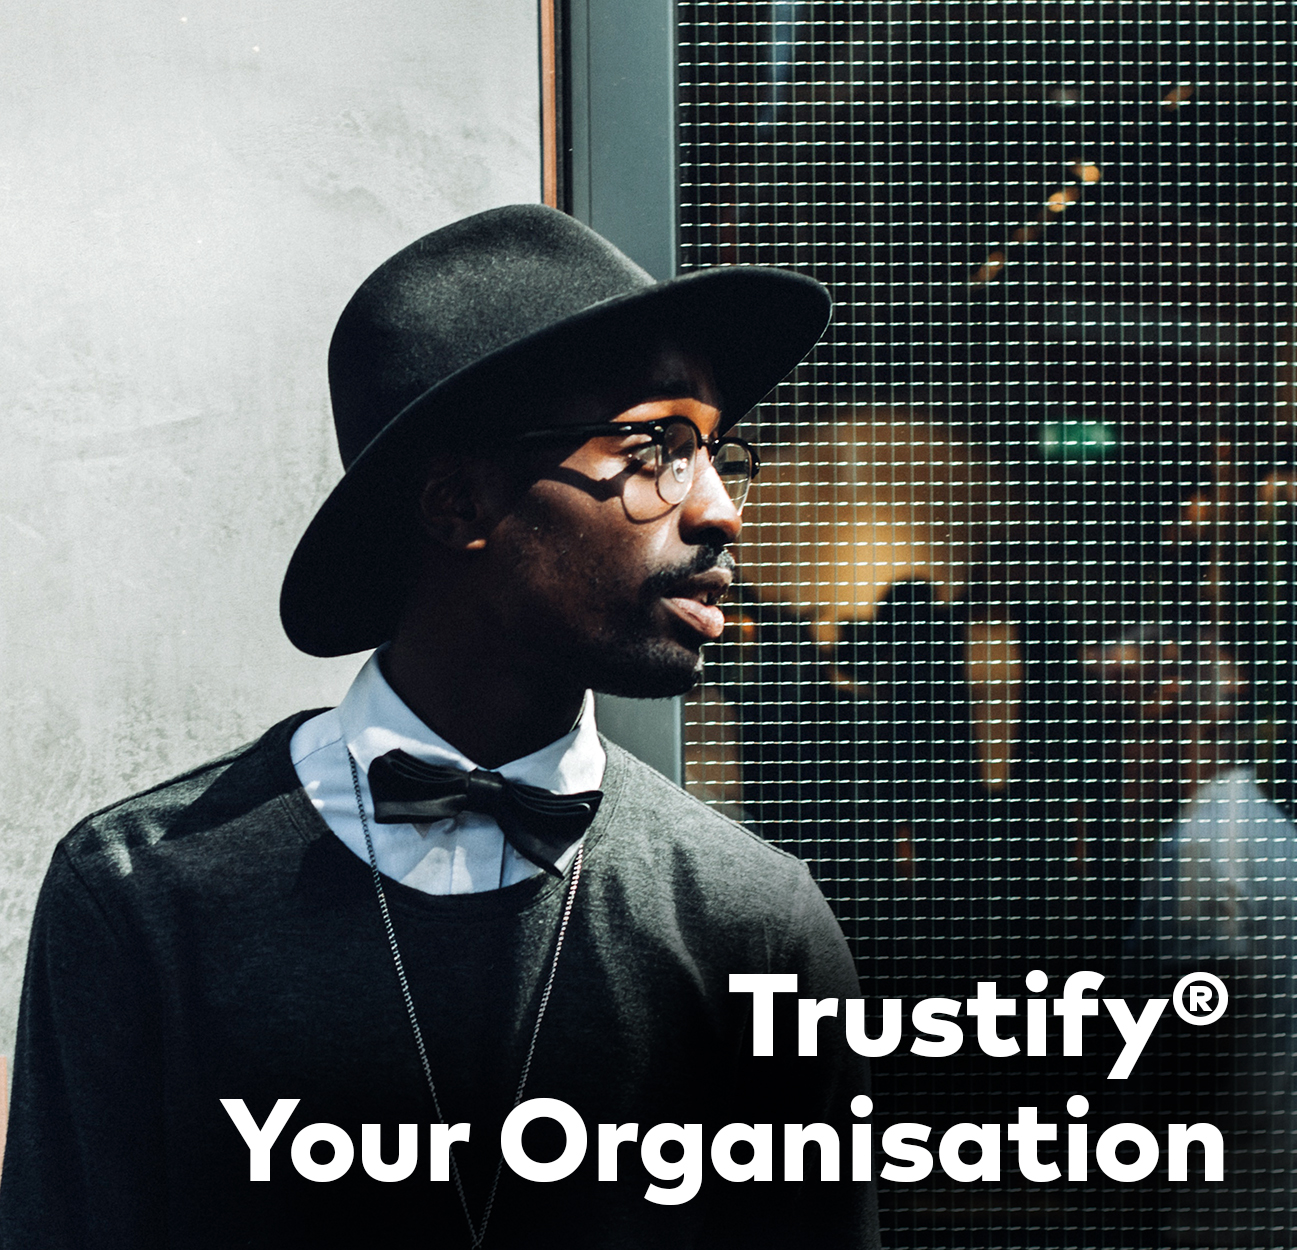 Mext_Consulting_Firm_Melbourne_Trust_Trustify_Your_Organisation.jpg